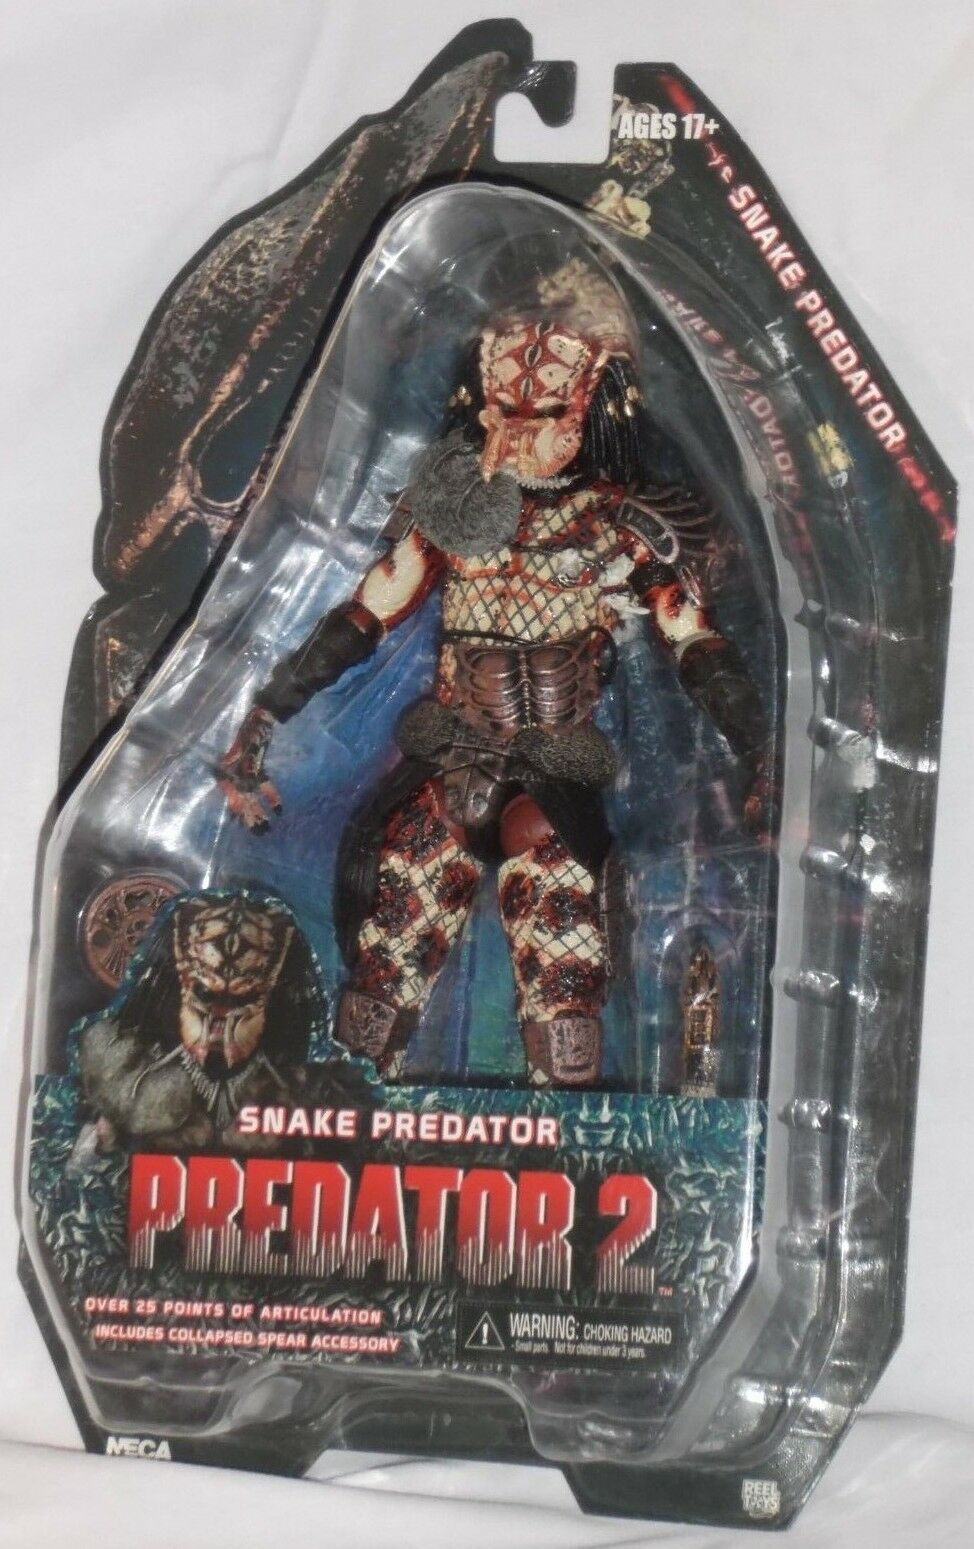 MISP NECA PROTATOR 2 Series 5 SNAKE cult ALIEN horror movie 7